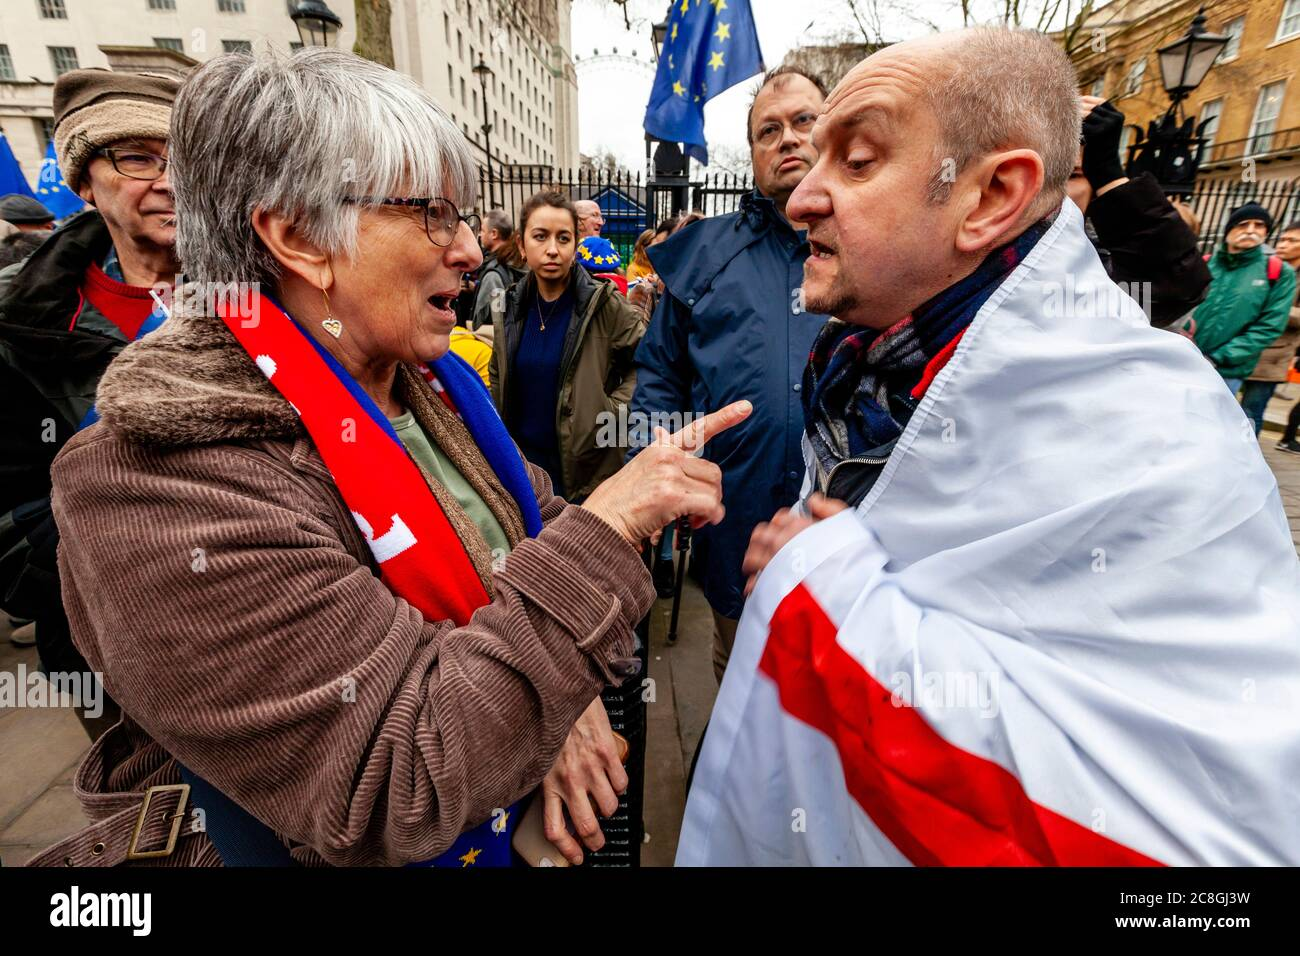 A Brexit Supporter Argues With Pro EU Supporters Near Parliament Square, London, UK - Stock Photo